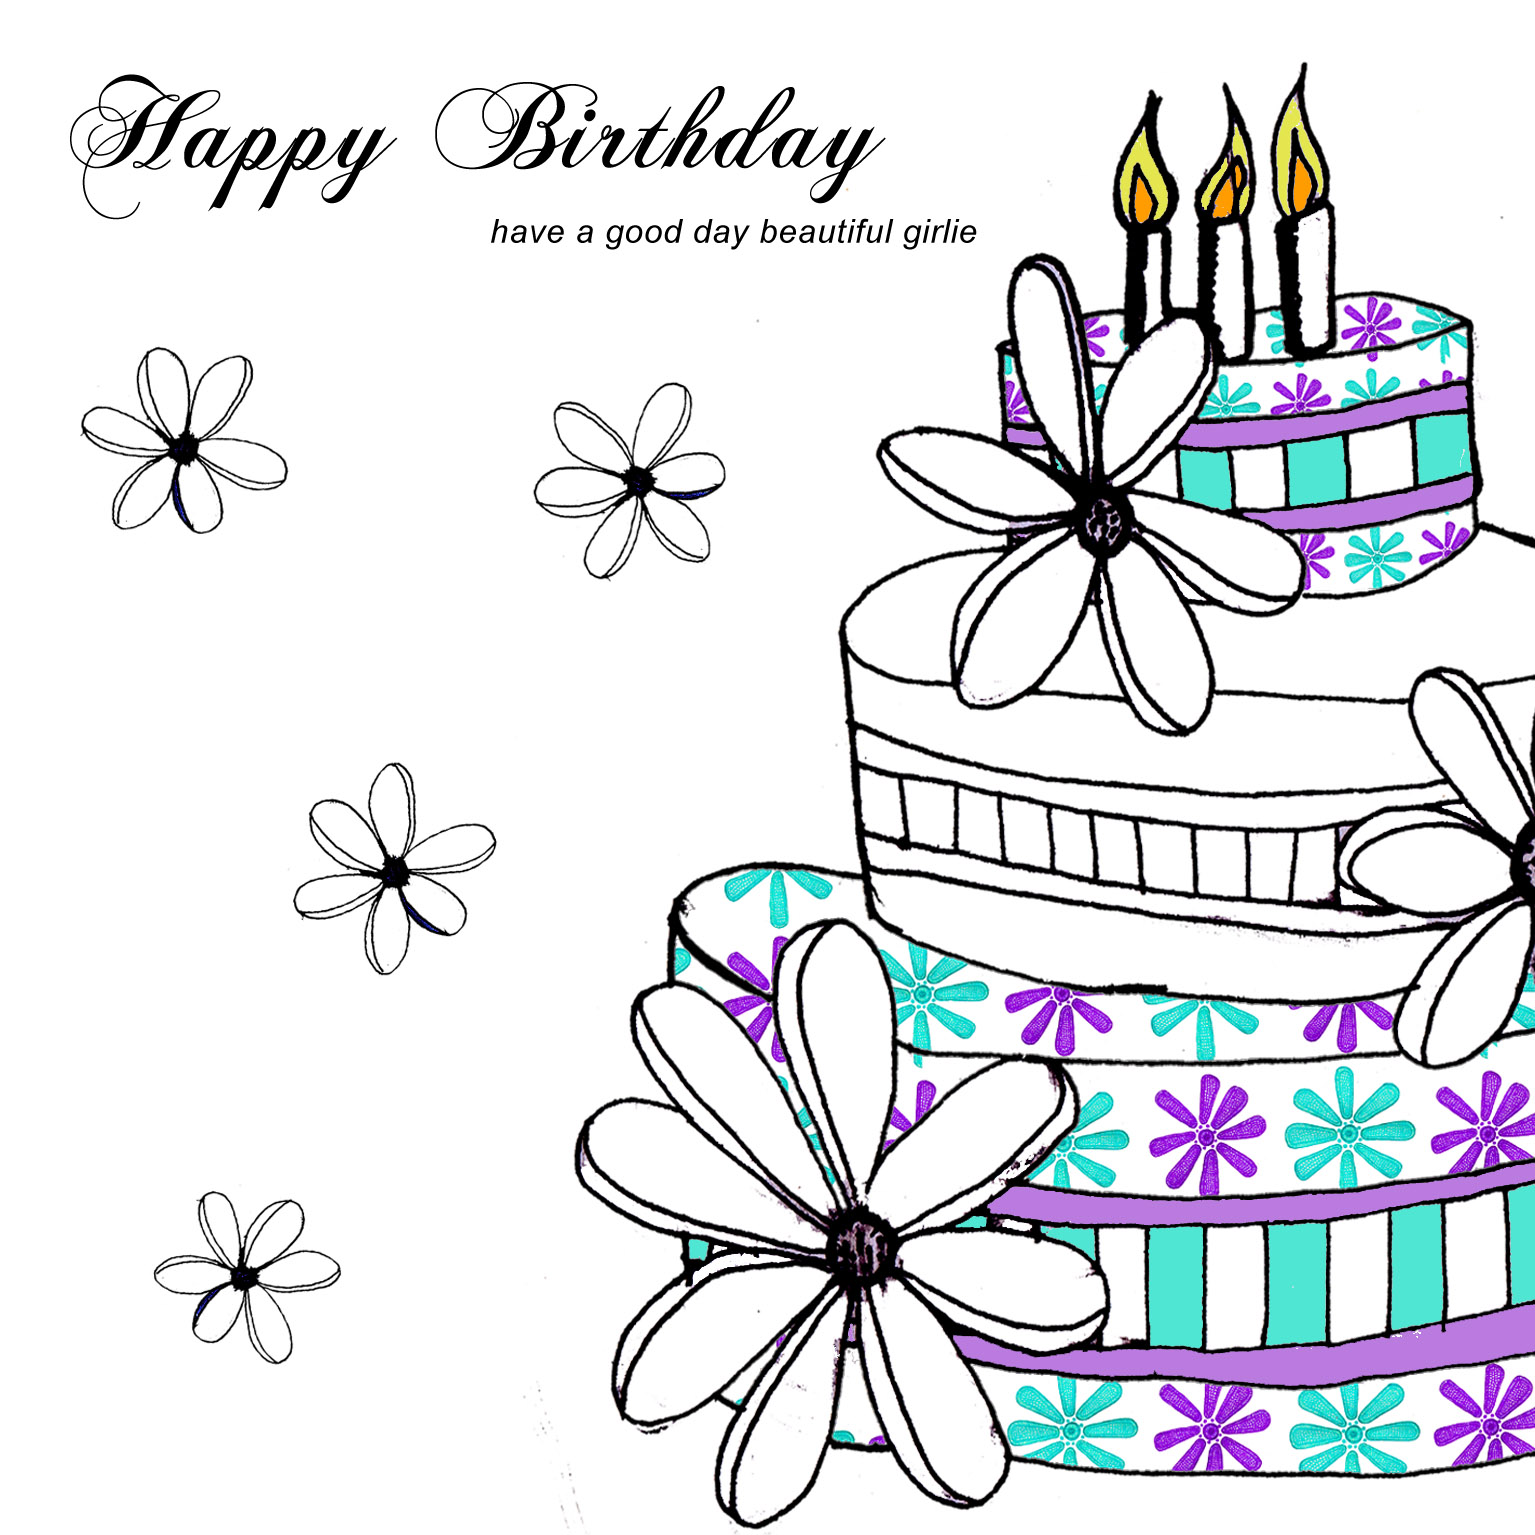 Heartfelt And Meaningful Birthday Toasts That You Will Need Happy Birthday Wishes Quotes Poems Toasts